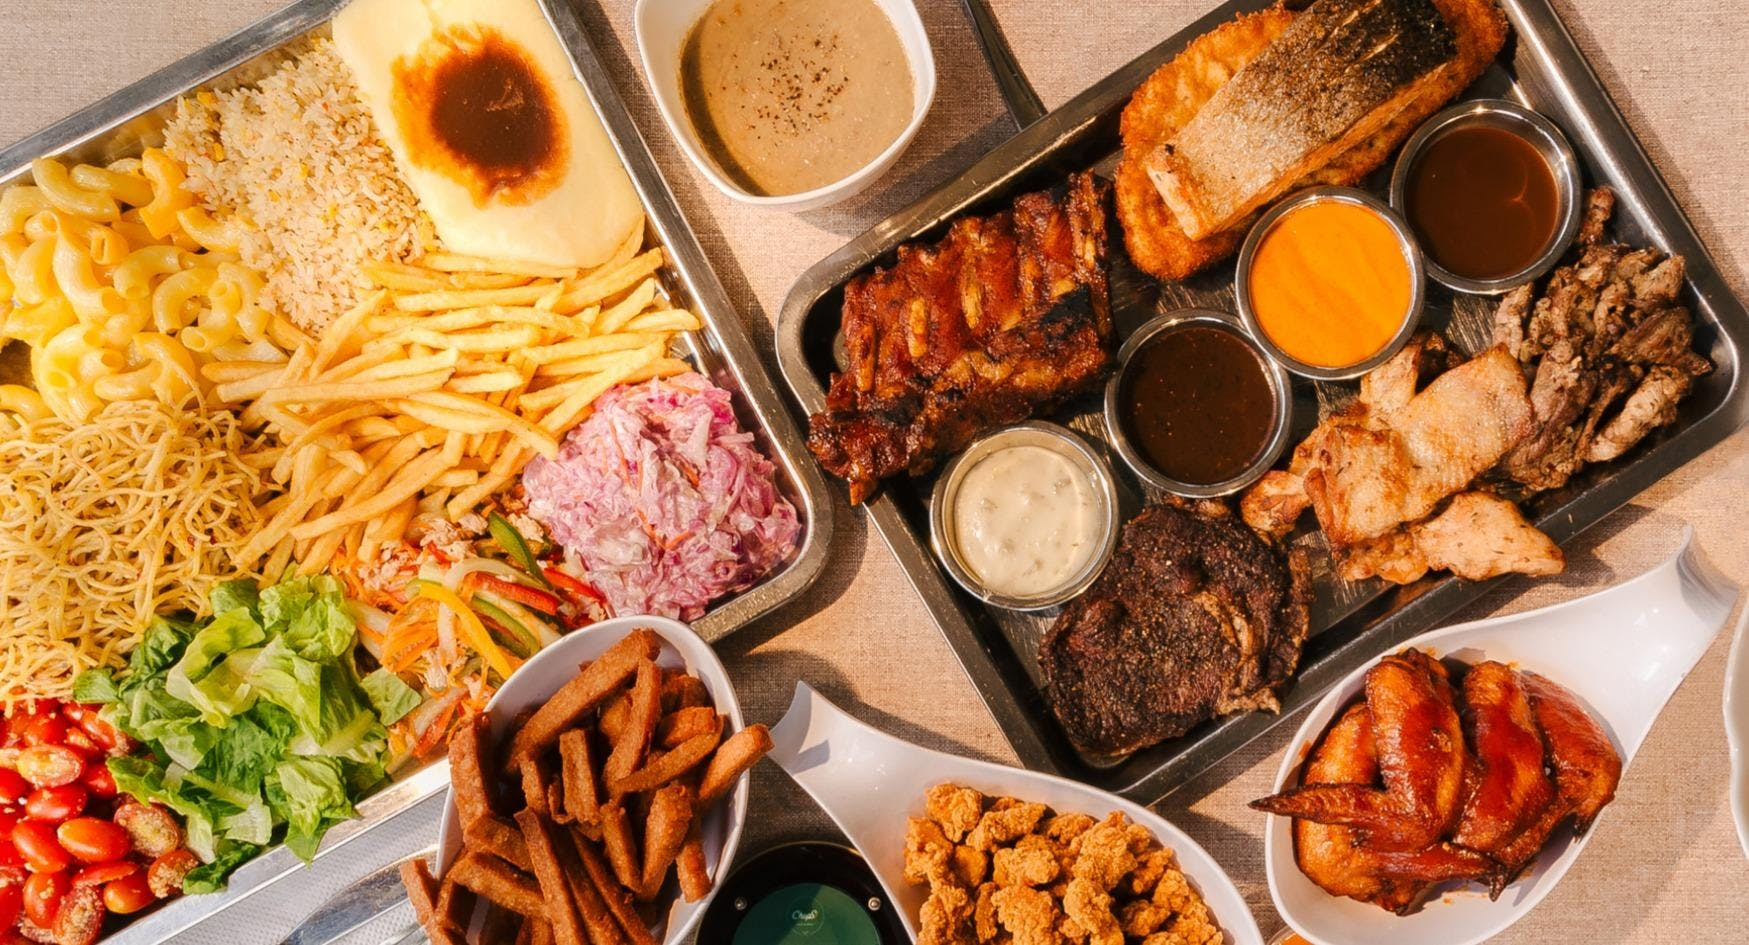 Chops Grill & Sides Singapore image 3